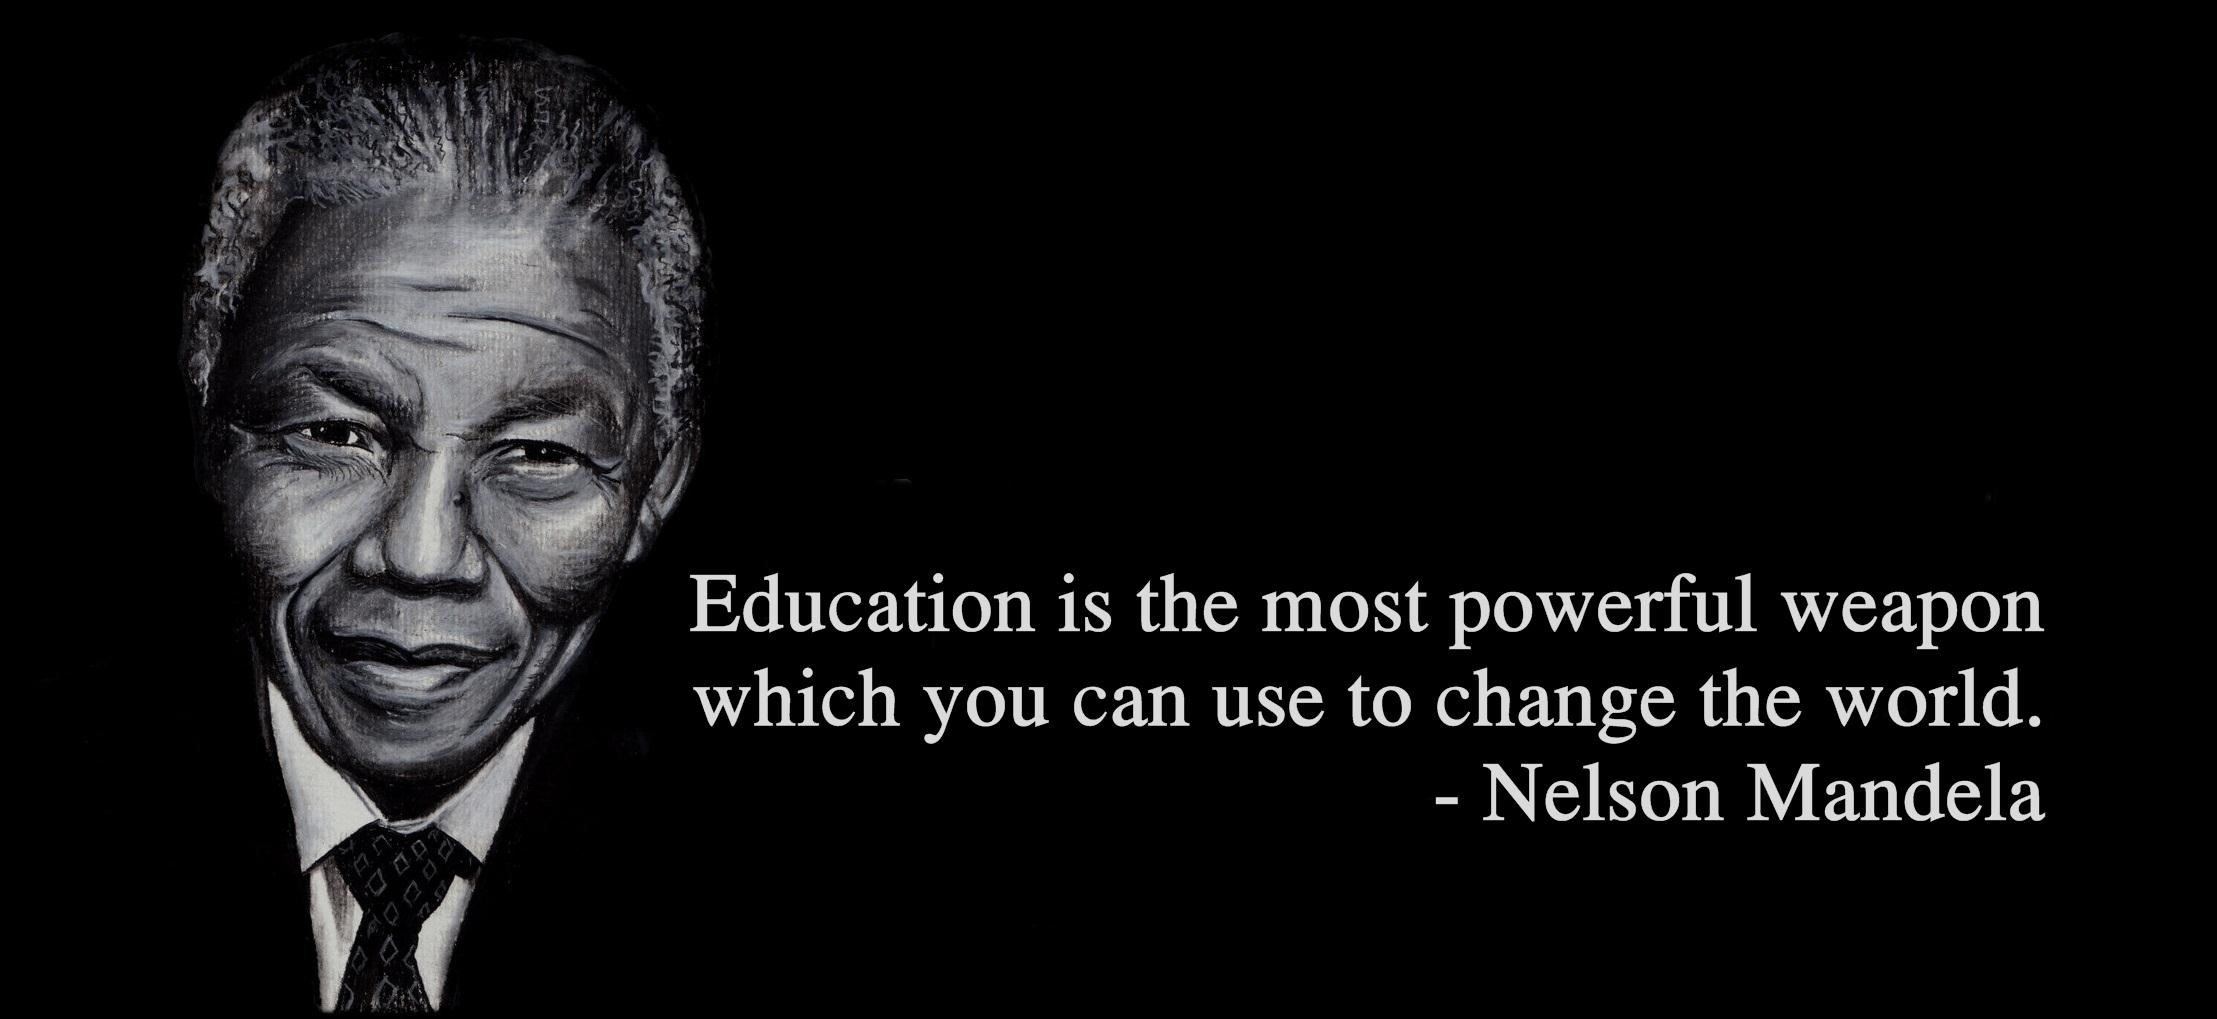 education quotes wallpapers - photo #8